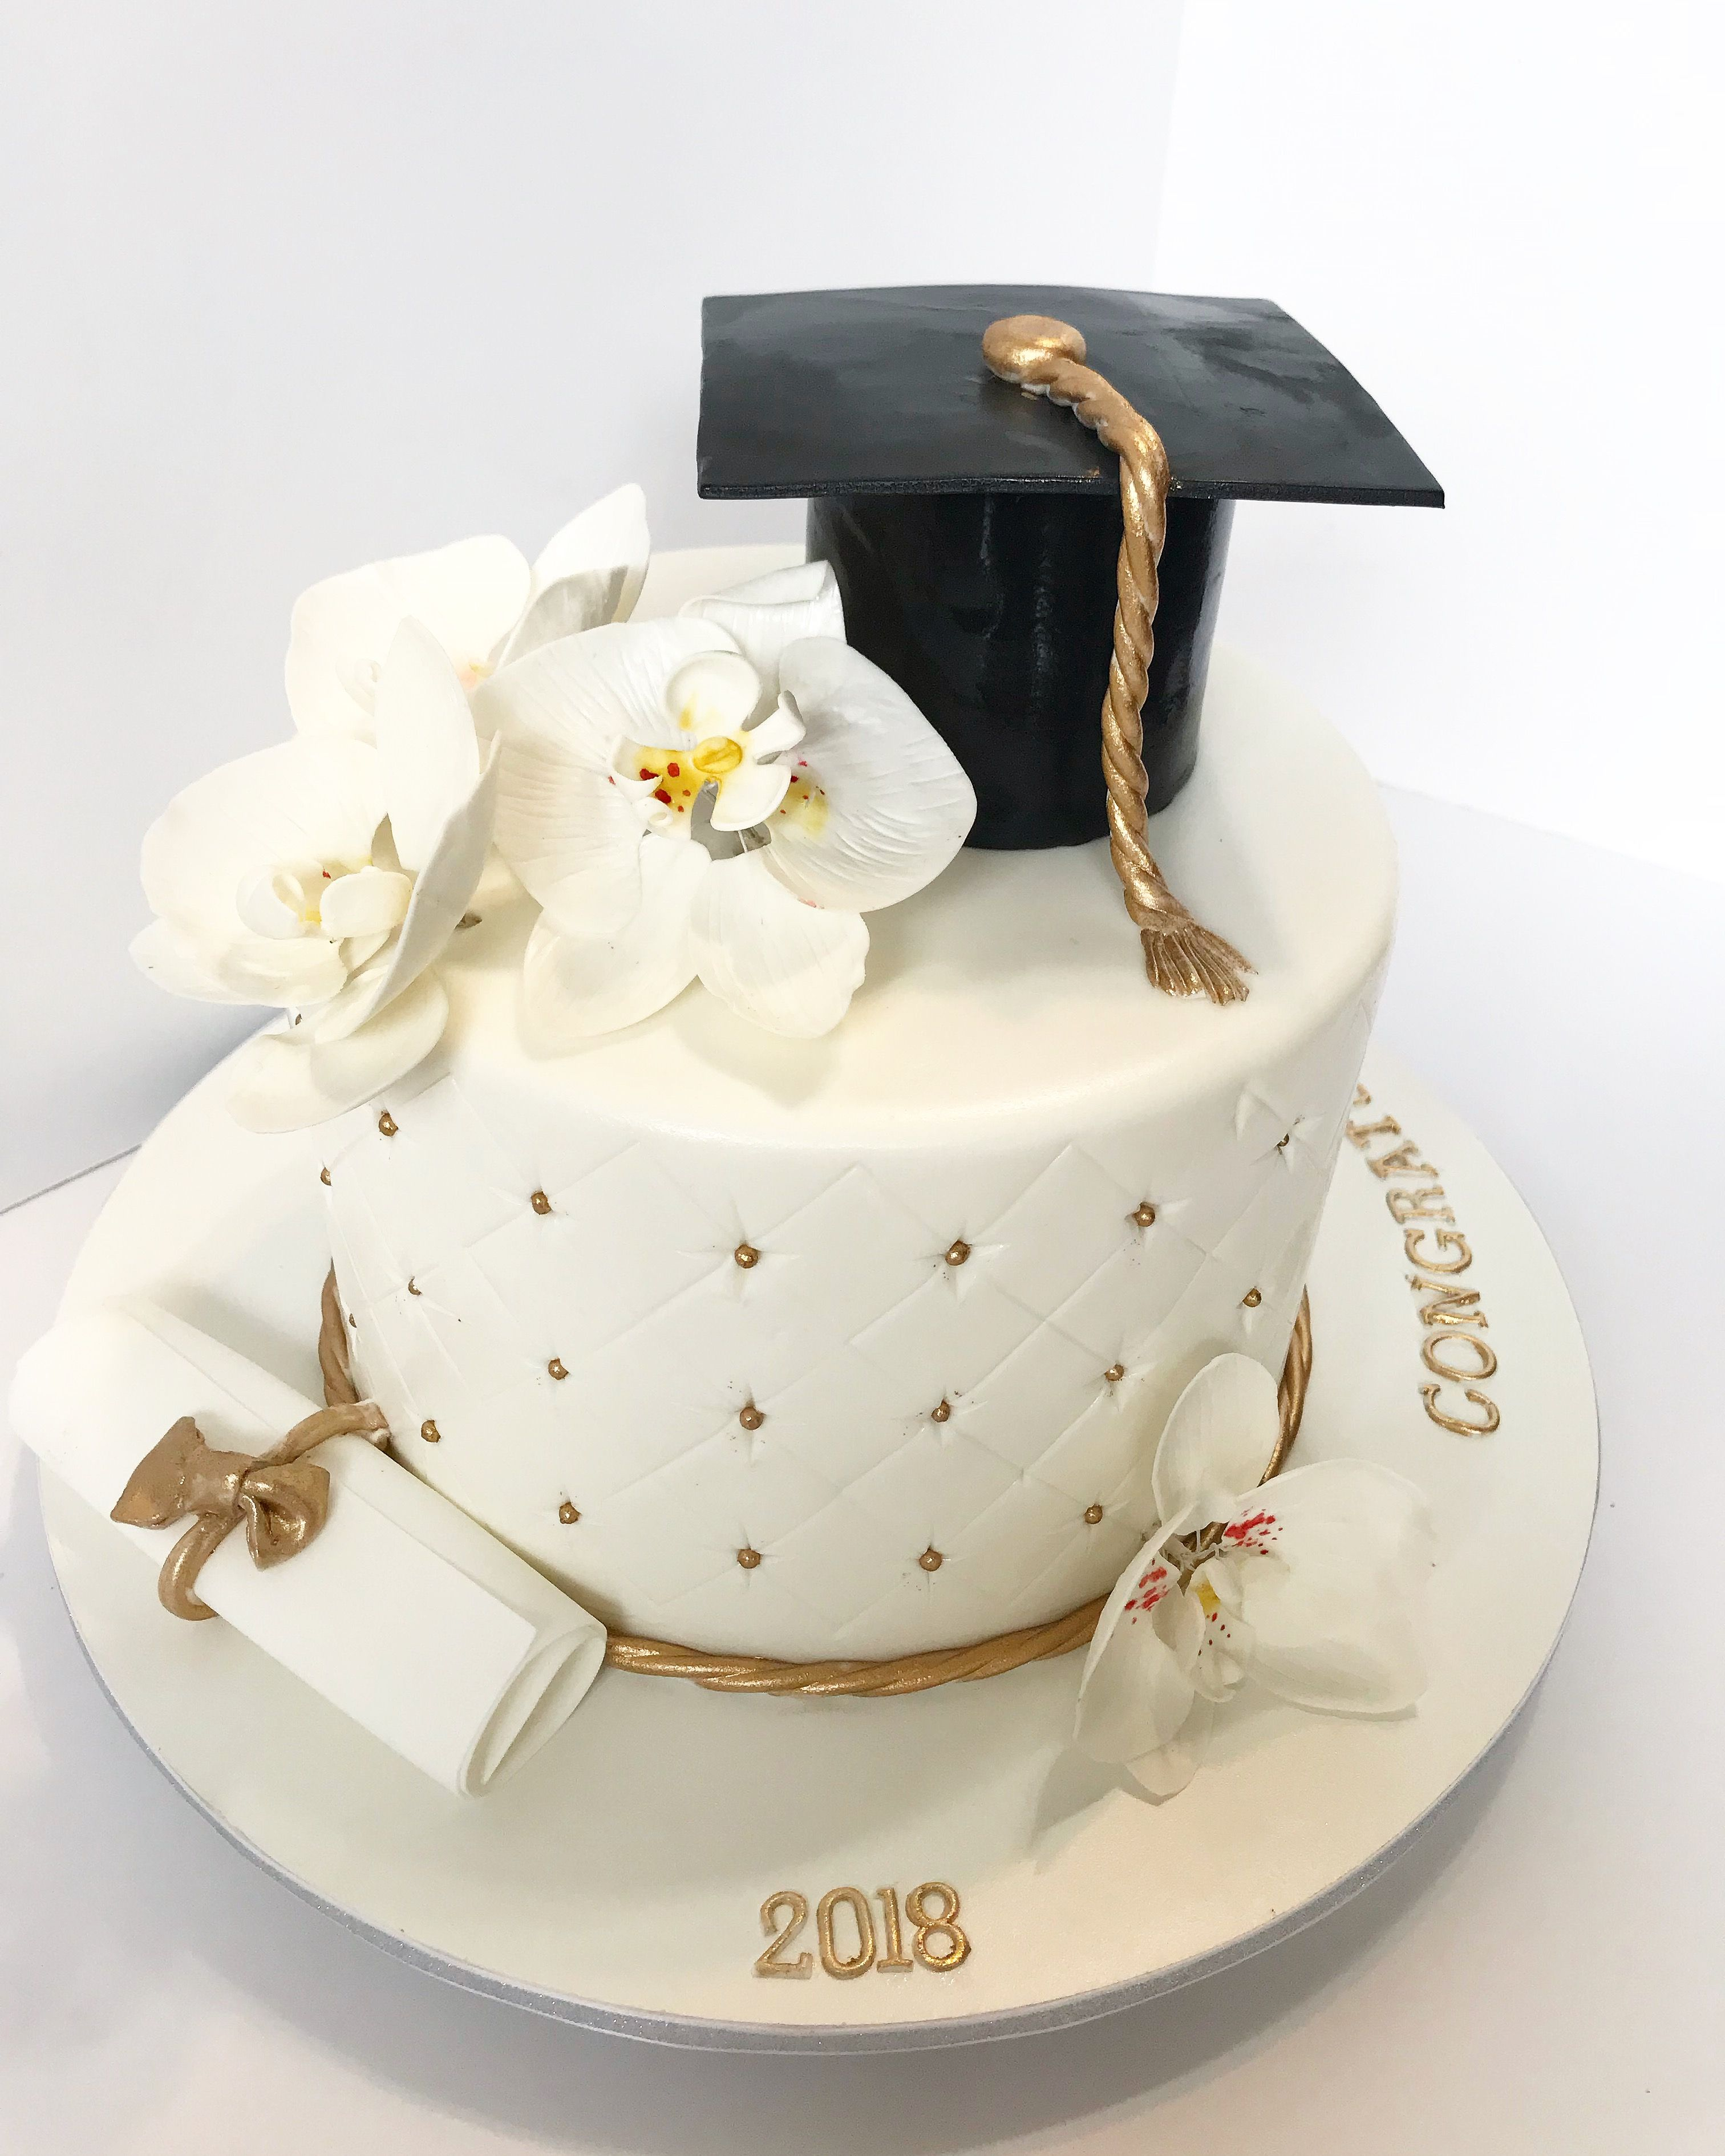 Graduation Cake Graduation Party Cake College Graduation Cakes